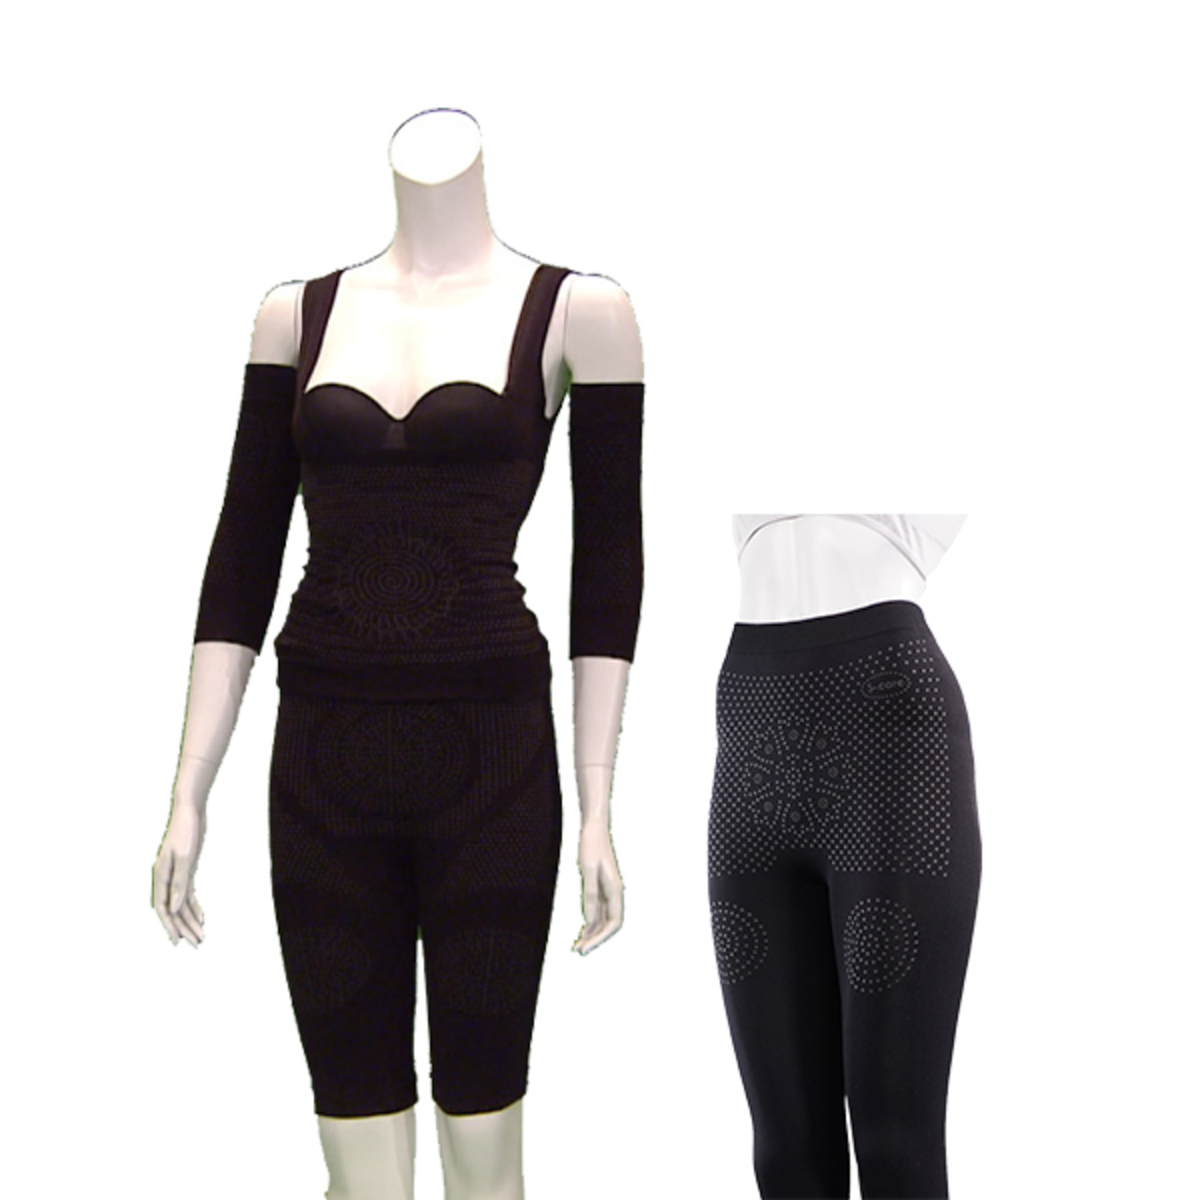 8b7bd4ed662f5 S-Care Body Shaper with Ion Legging